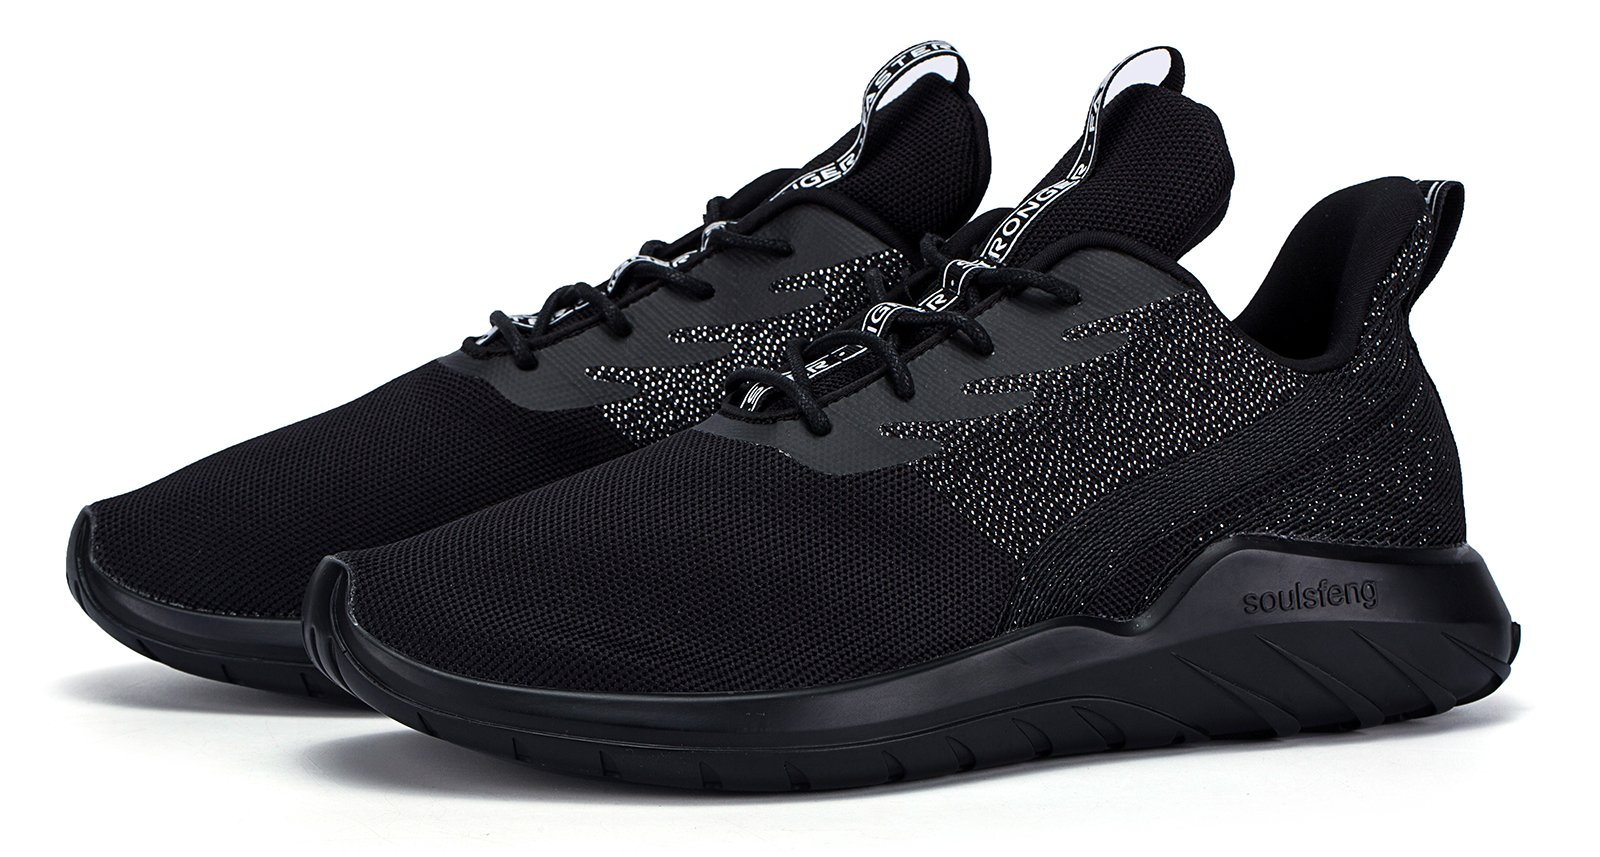 Soulsfeng Men\'s Breathable Athletic Sports Shoes Lightweight Casual Fashion Sneaker (US8=EUR41=26CM, Black)